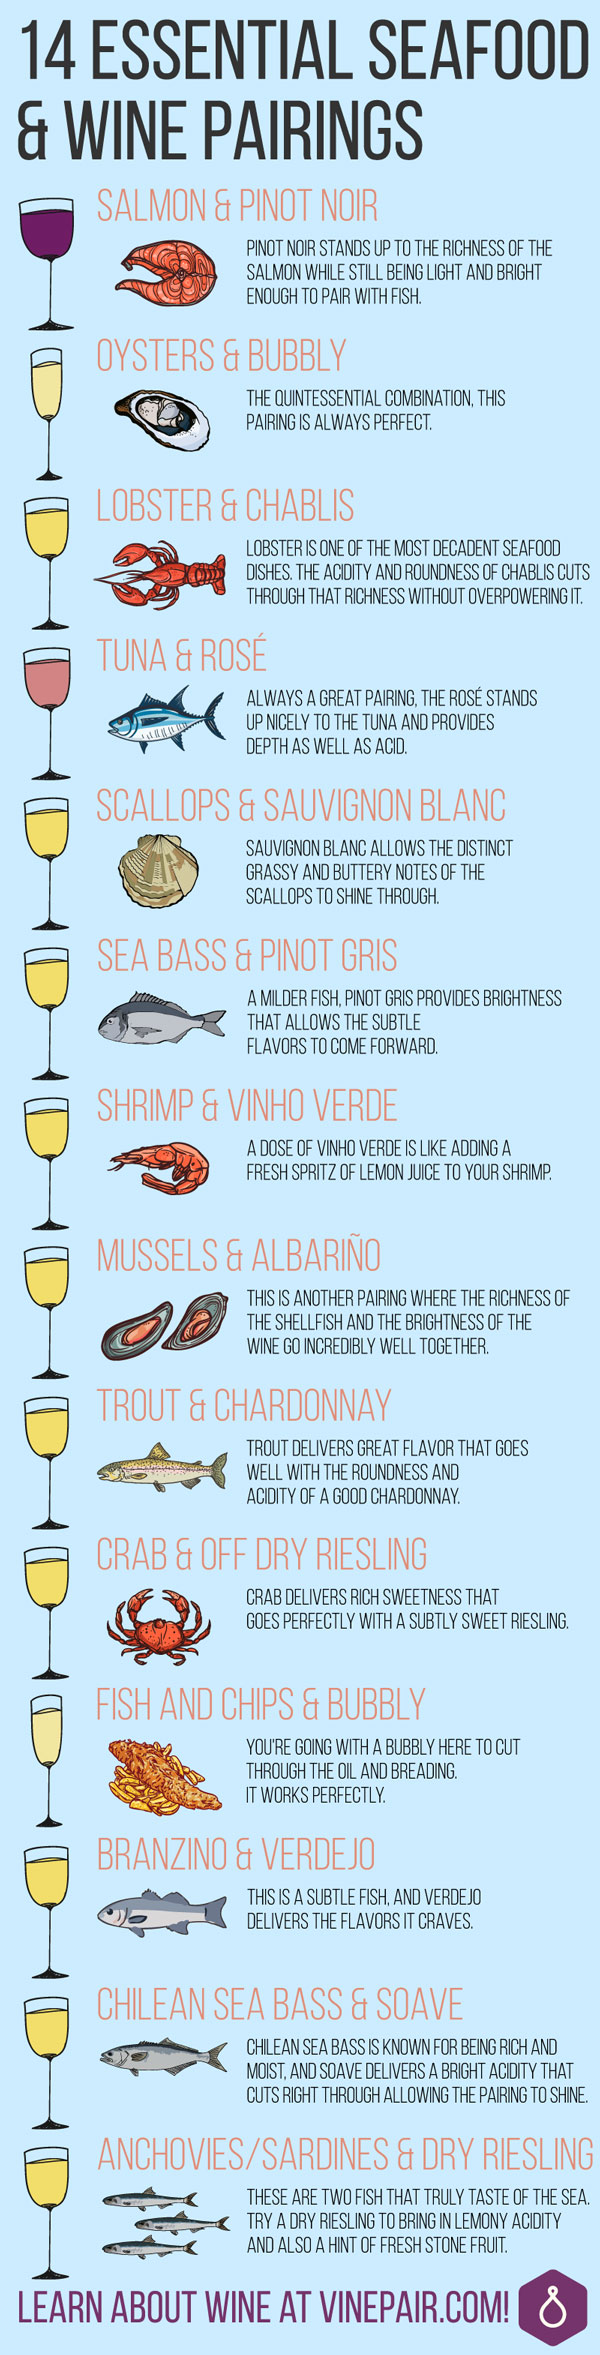 Pairing-Wine-with-Seafood